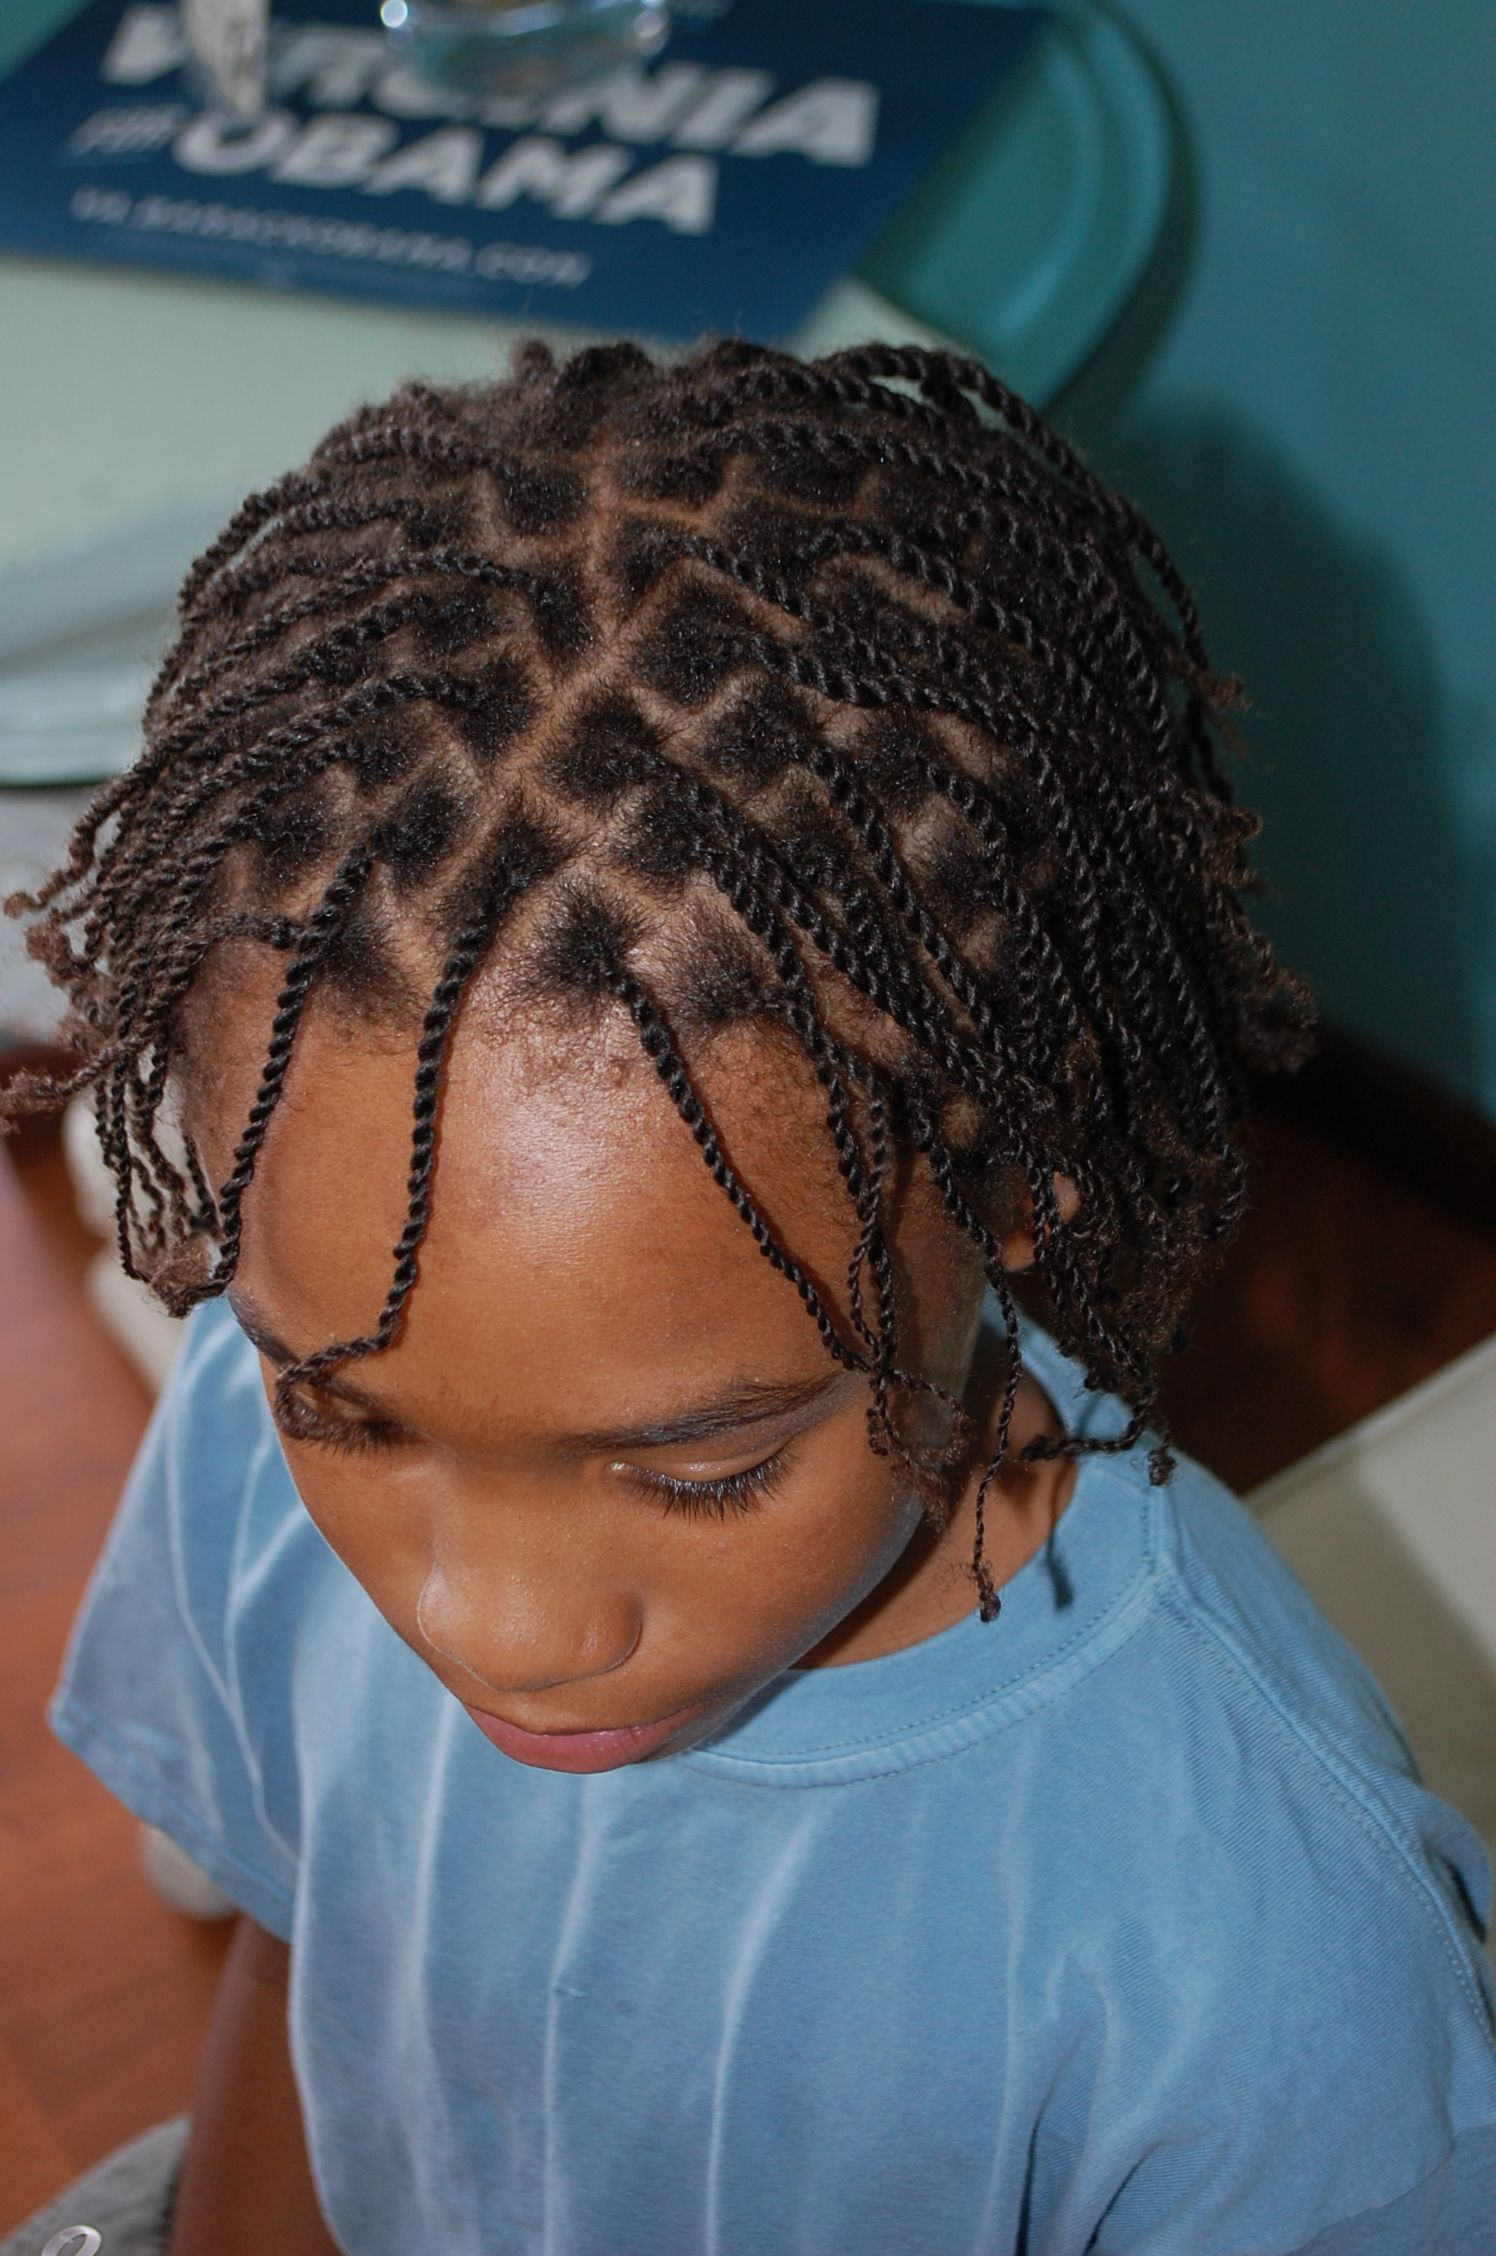 Hair Salon Woodbridge Va Short Hair Styles Short Haircut Hair Hairstyles Hair Weaves Cornrow H Braids For Boys Boy Braid Styles Boy Braids Hairstyles